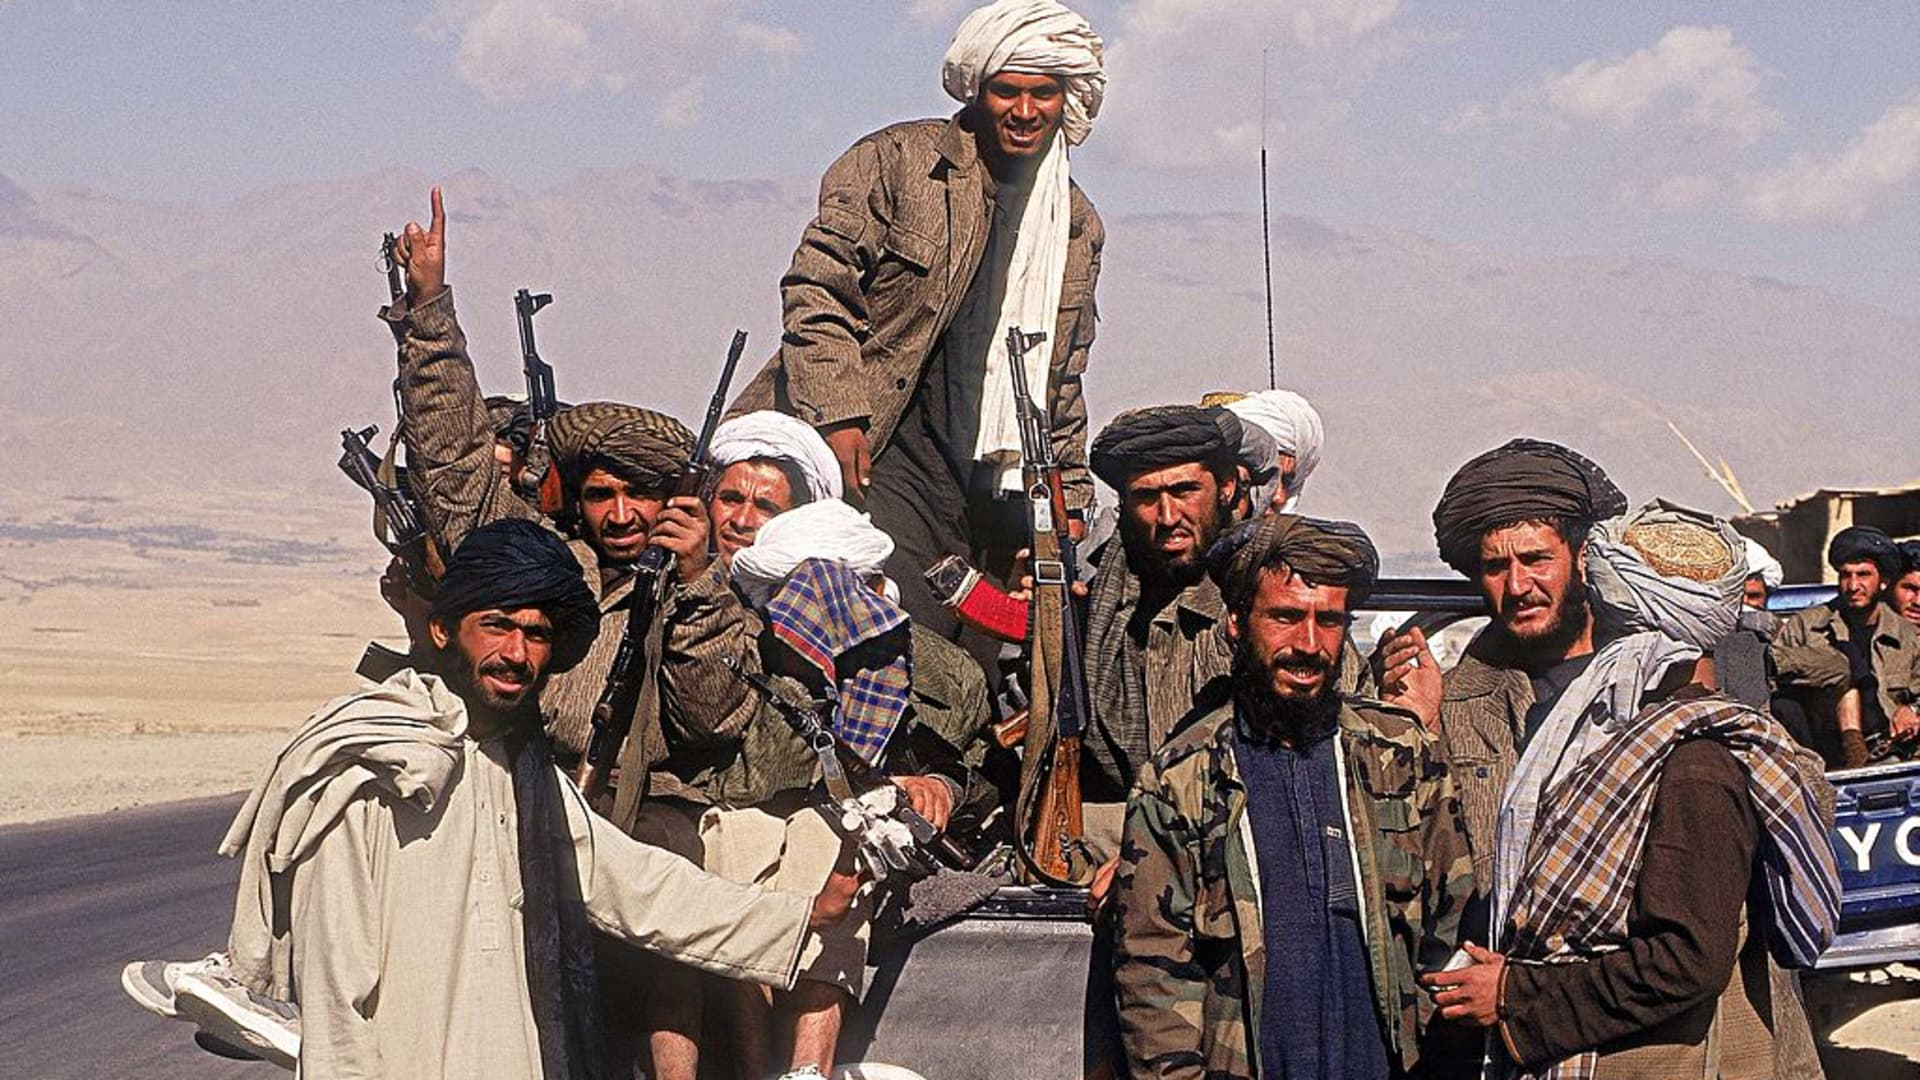 Taliban fighters with a vehicle on a highway in Afghanistan.